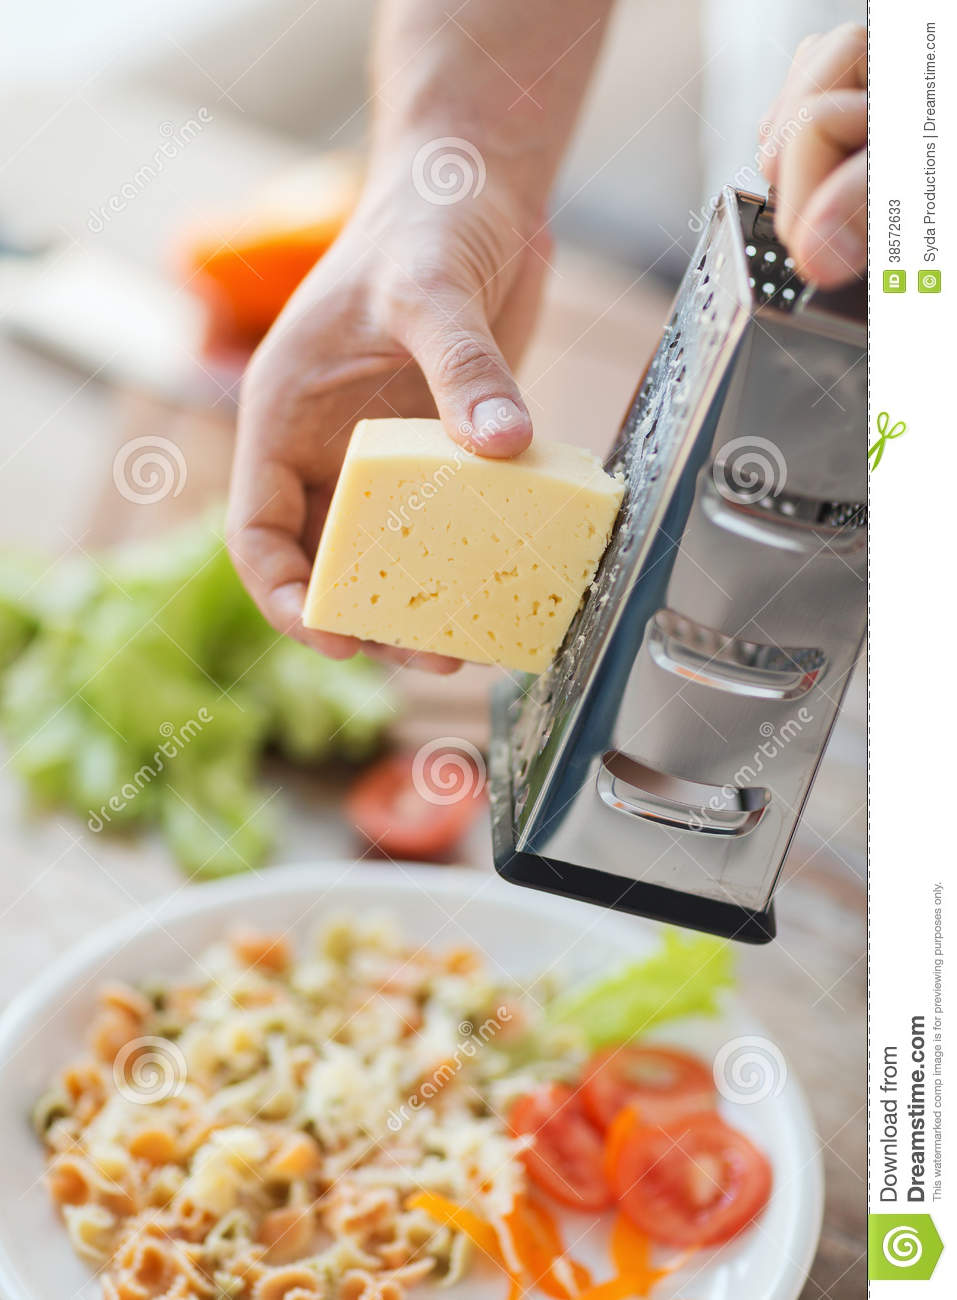 close up of male hands grating cheese over pasta stock photos image 38572633. Black Bedroom Furniture Sets. Home Design Ideas